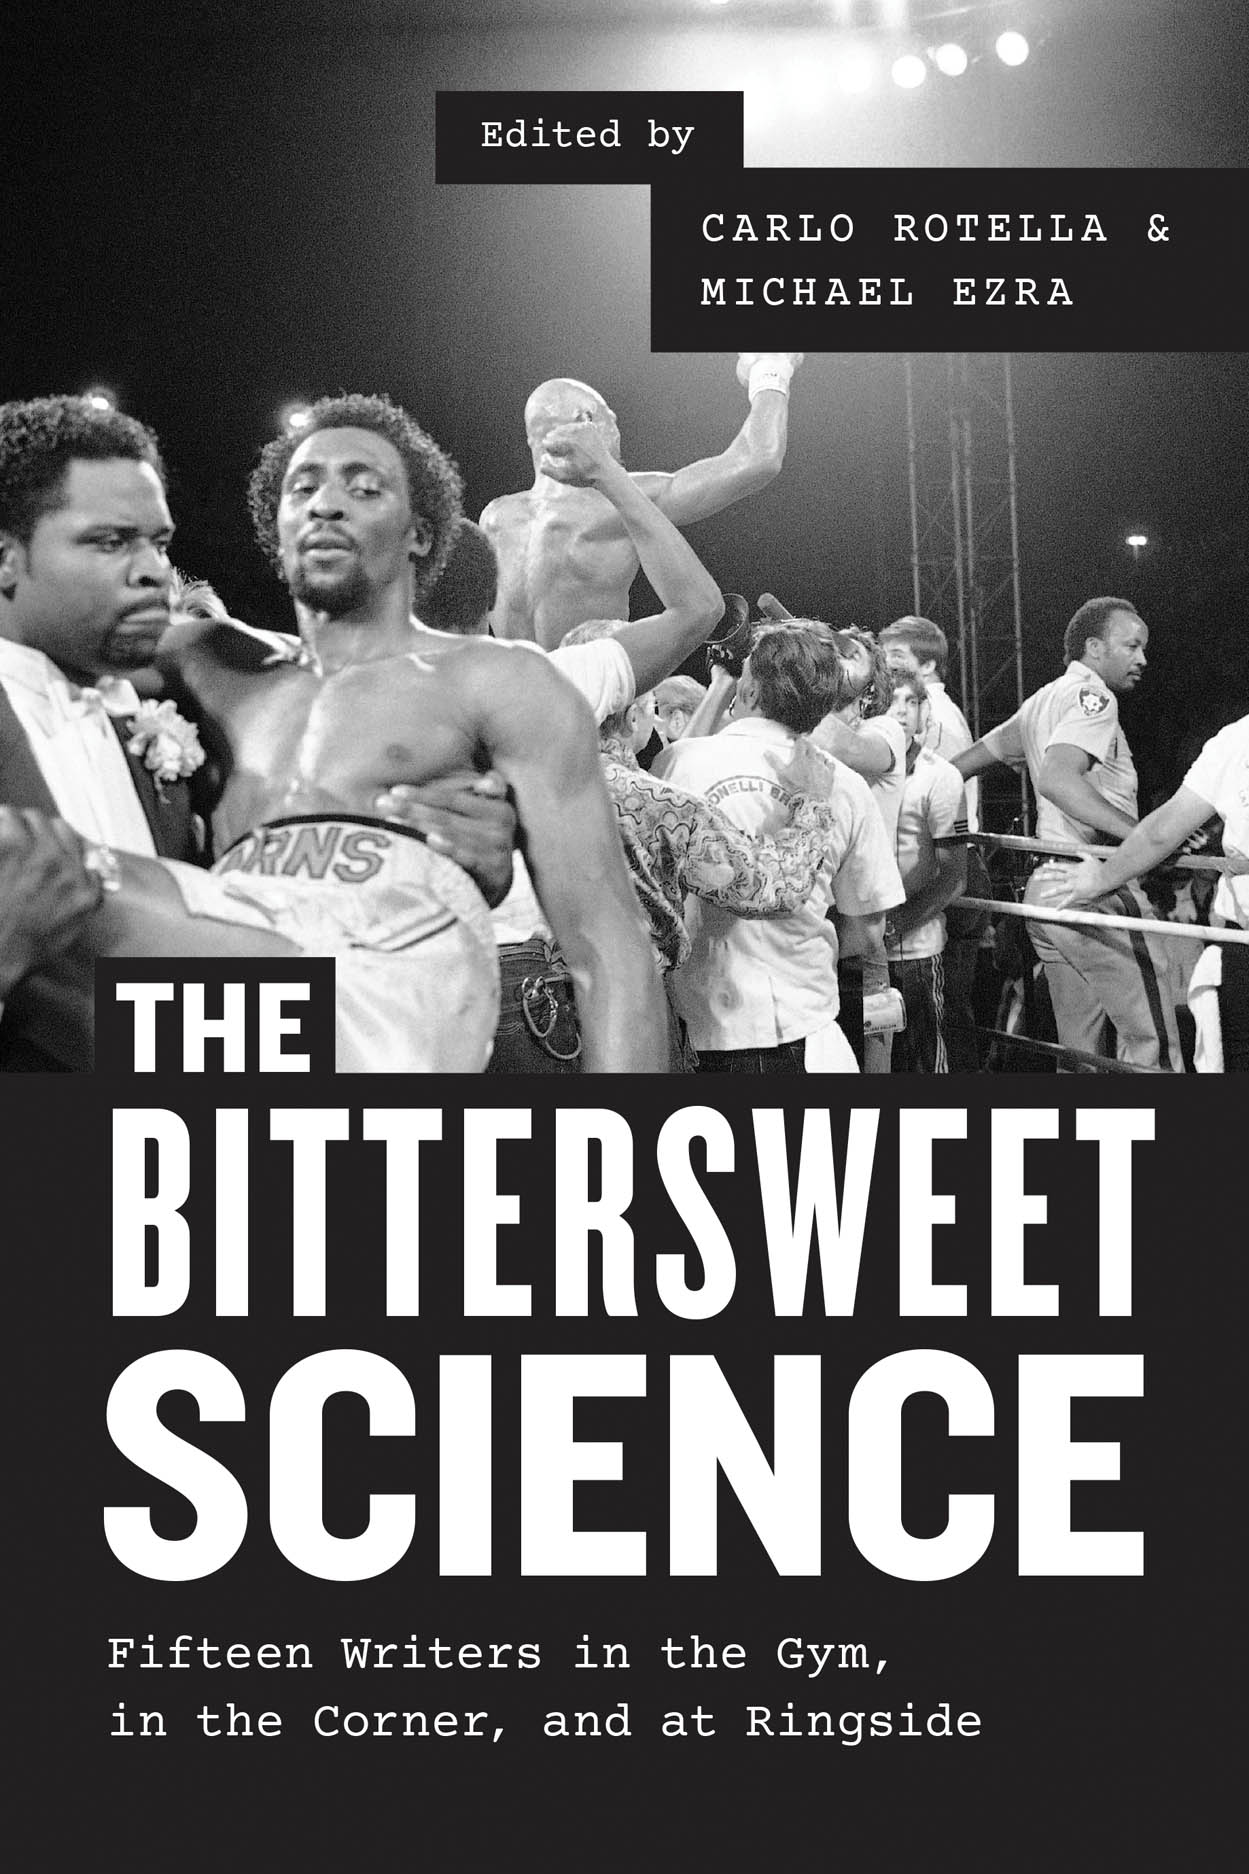 Bittersweet Science